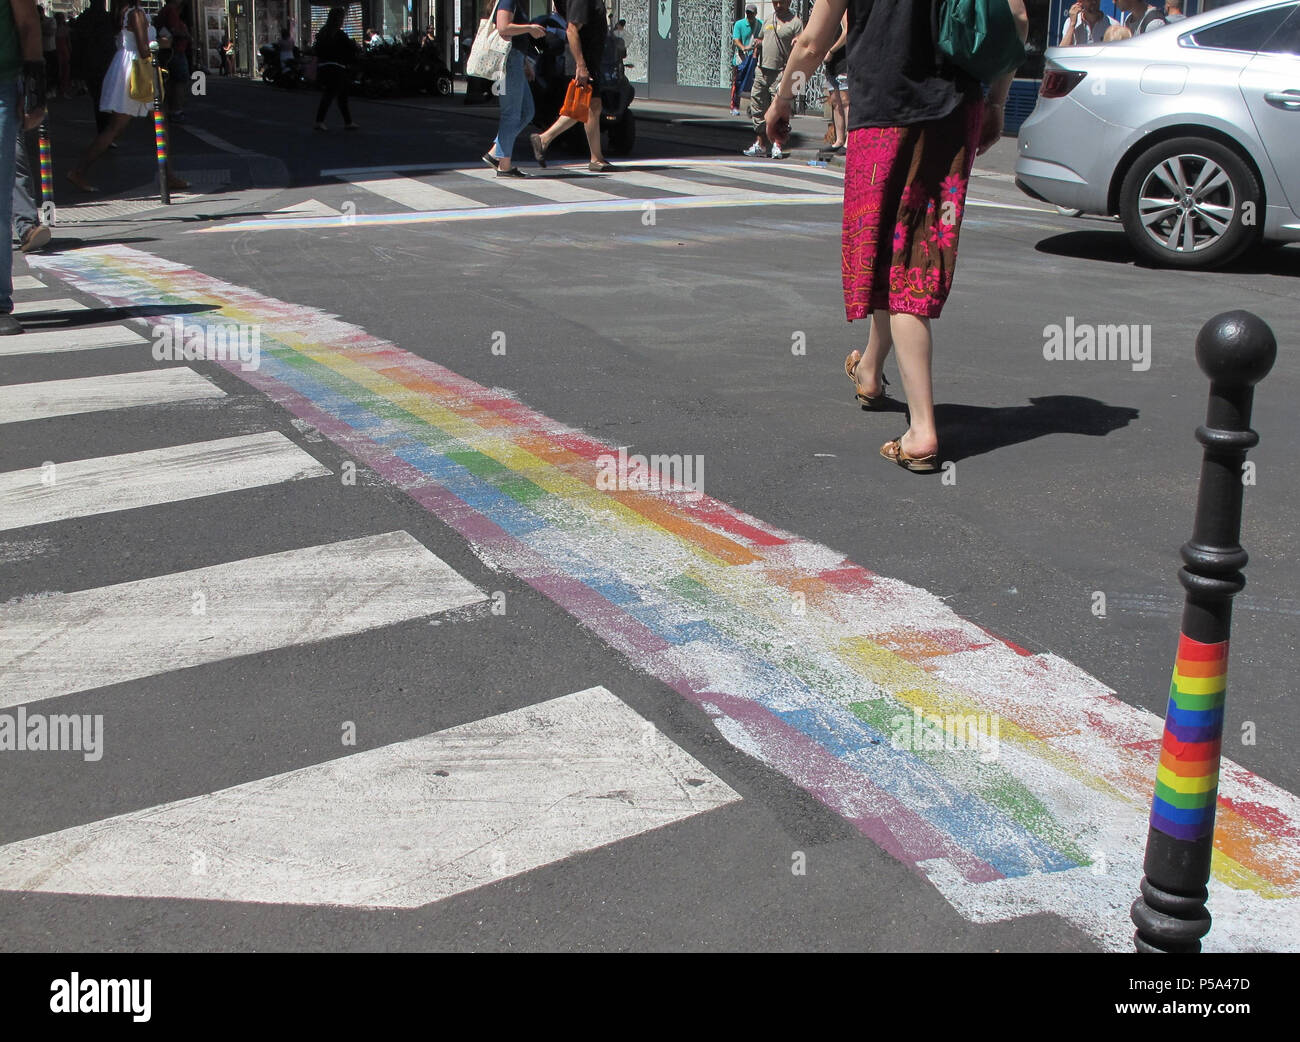 Paris, France. 26th June, 2018. A woman walks along a rainbow, which was covered with paint at a street crossing. Shortly before a so-called pride parade in Paris, a homophobic gesture, in which rainbows were covered with paint, led to protests. The capital city is now planning to react by colouring additional sections. Credit: Ronja Bauer/dpa/Alamy Live News - Stock Image